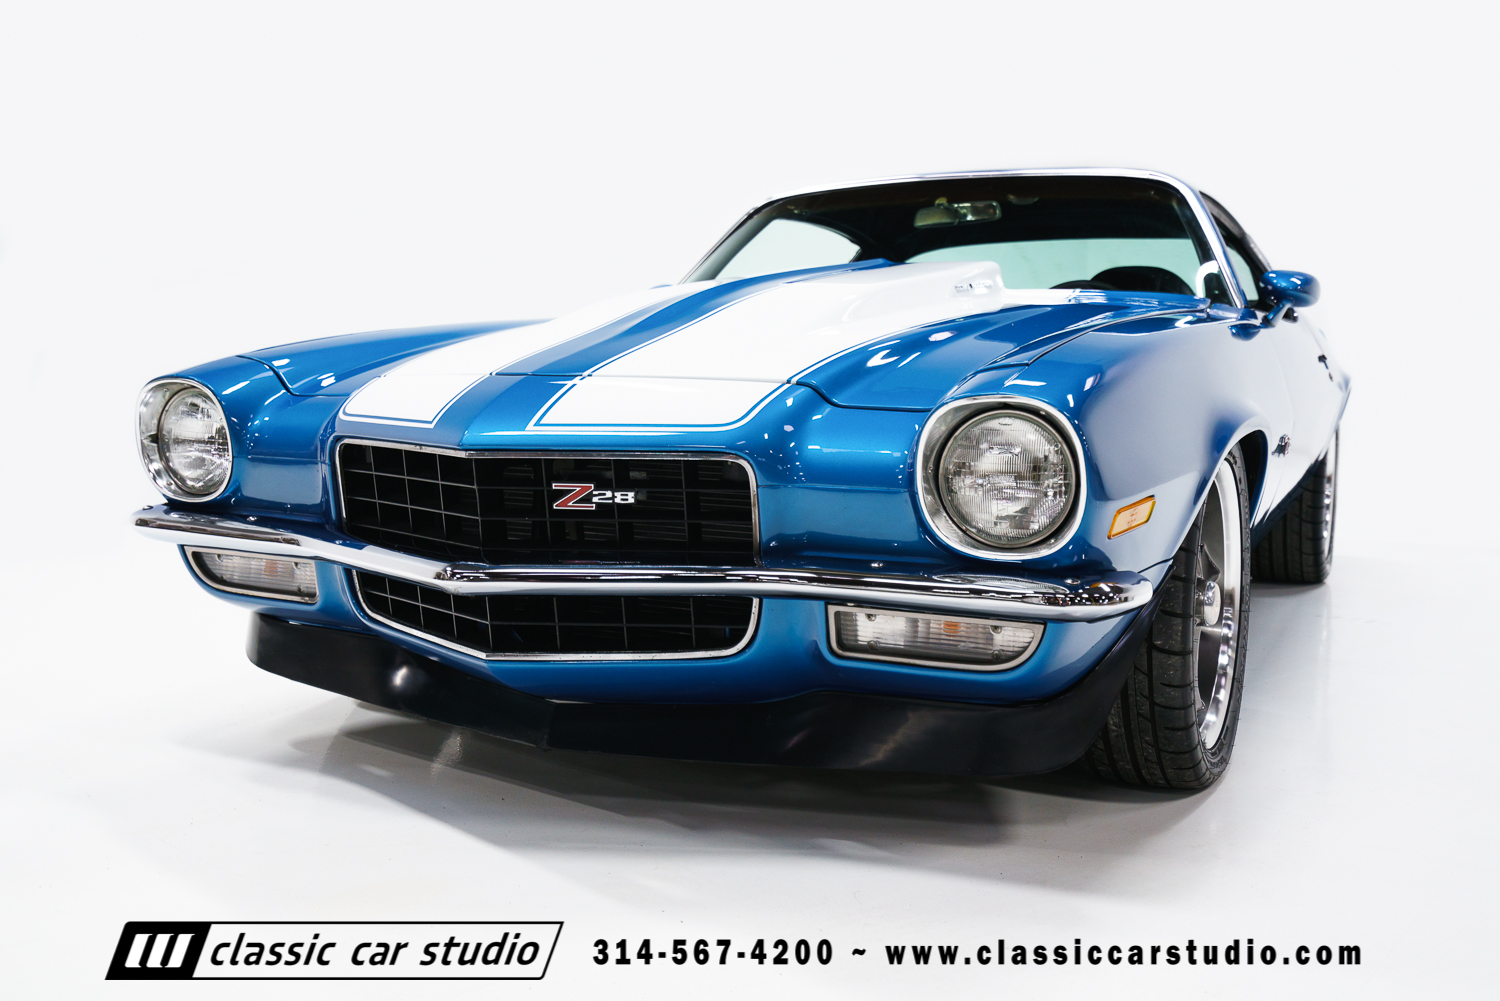 1972 chevrolet camaro classic car studio. Black Bedroom Furniture Sets. Home Design Ideas